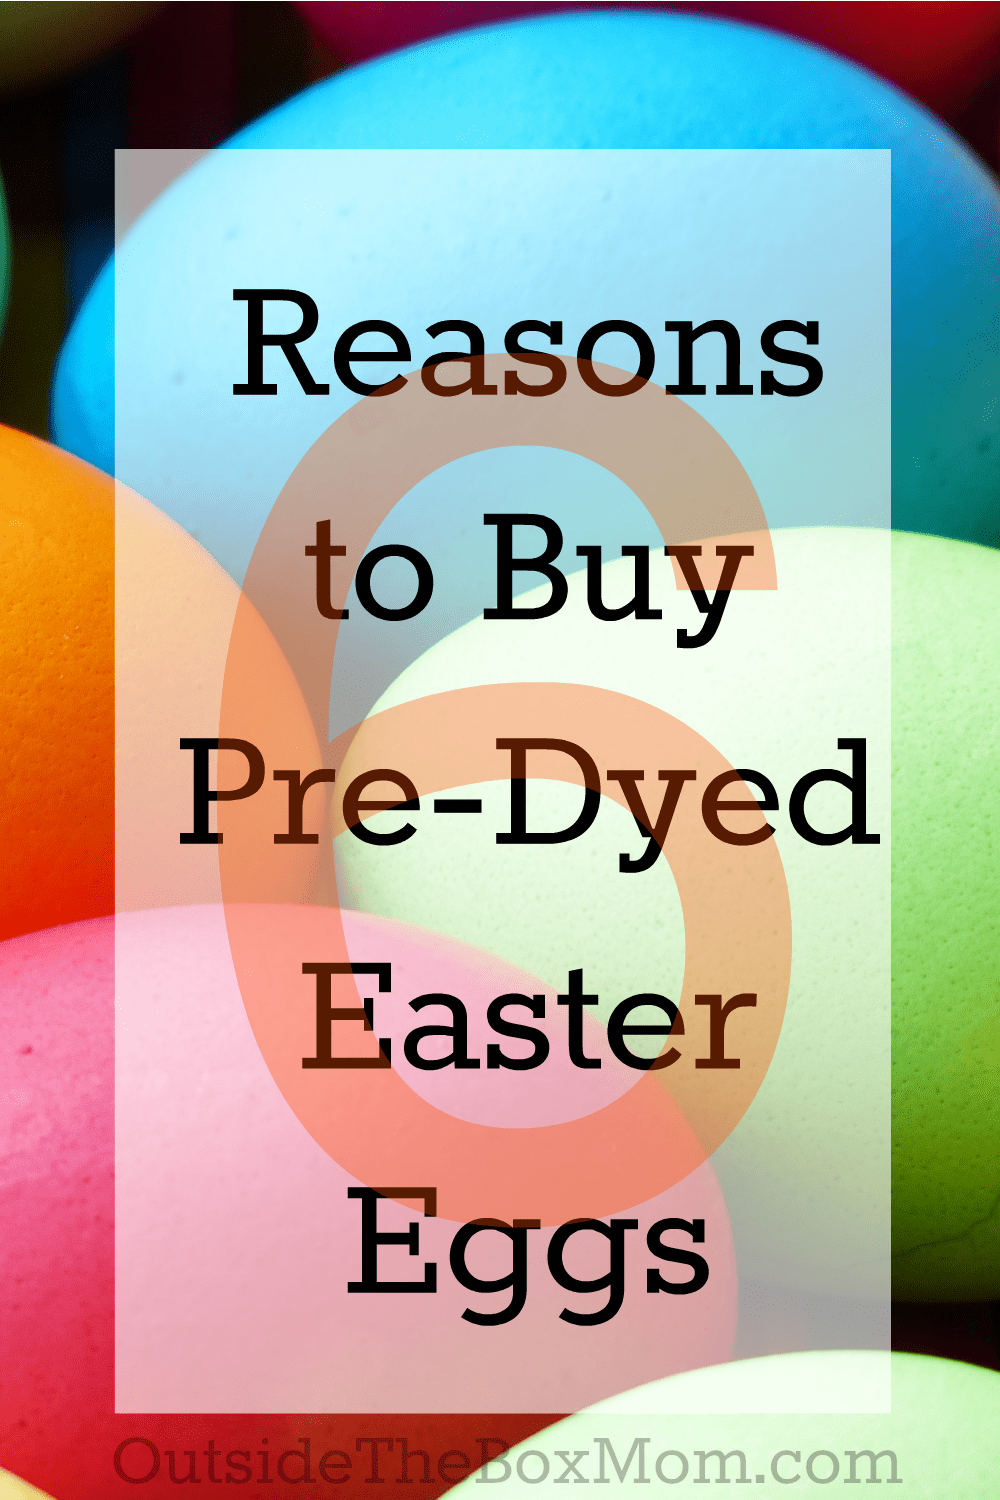 # Reasons You Might Buy Pre-Dyed Easter Eggs | Outsidetheboxmom.com